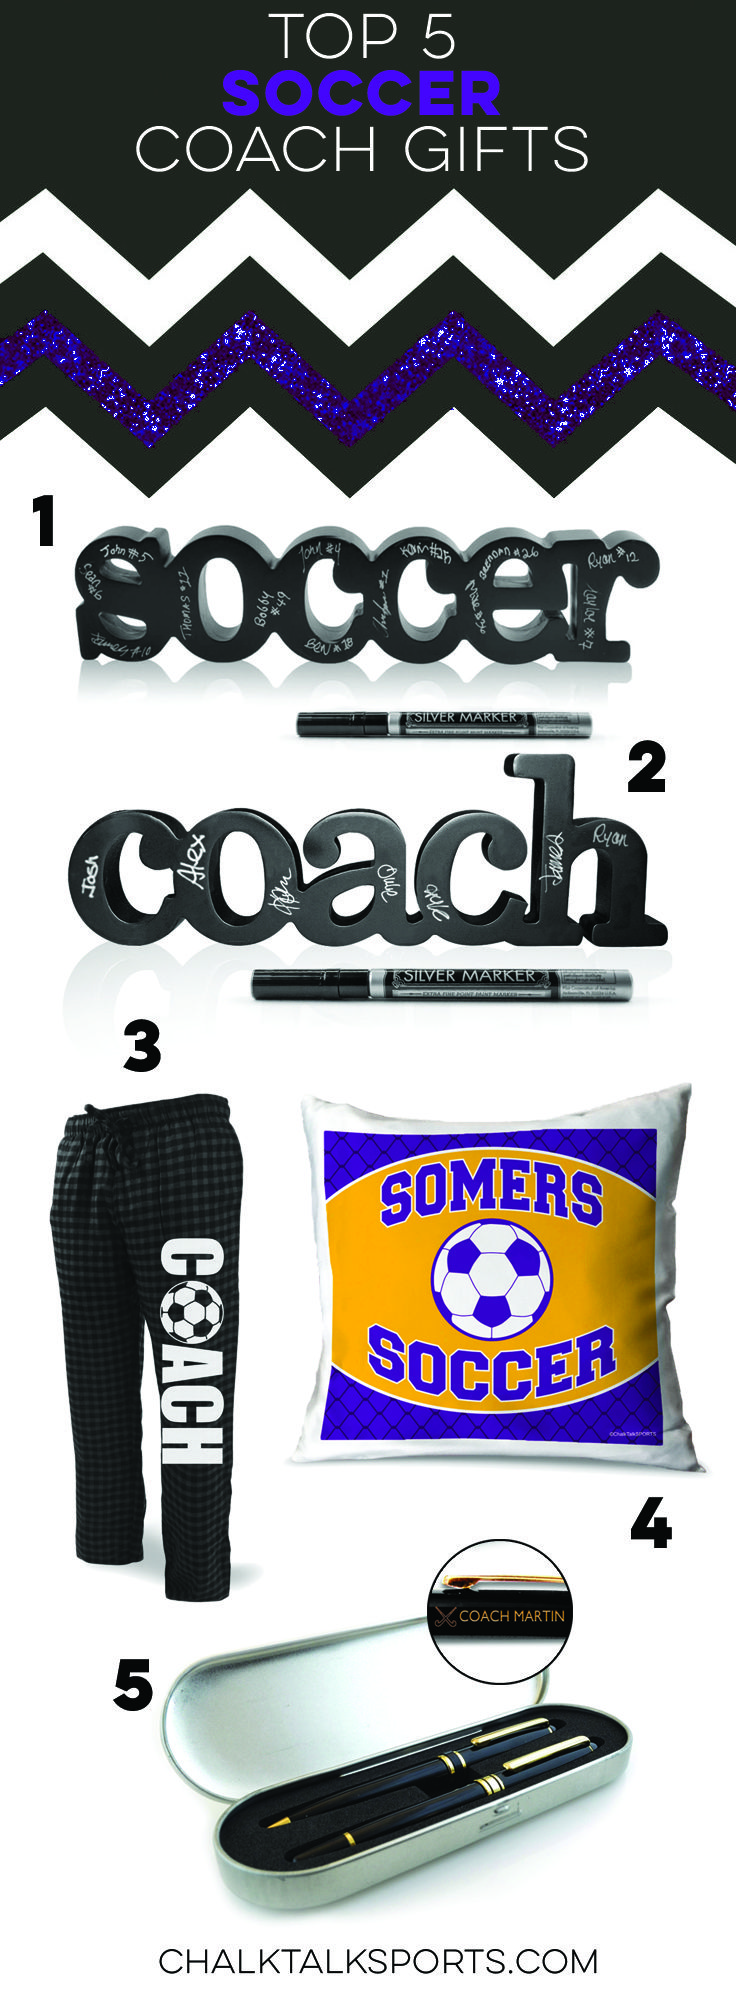 Our Top 5 Best Ing Coaches Gifts We Have So Many Unique Items That You